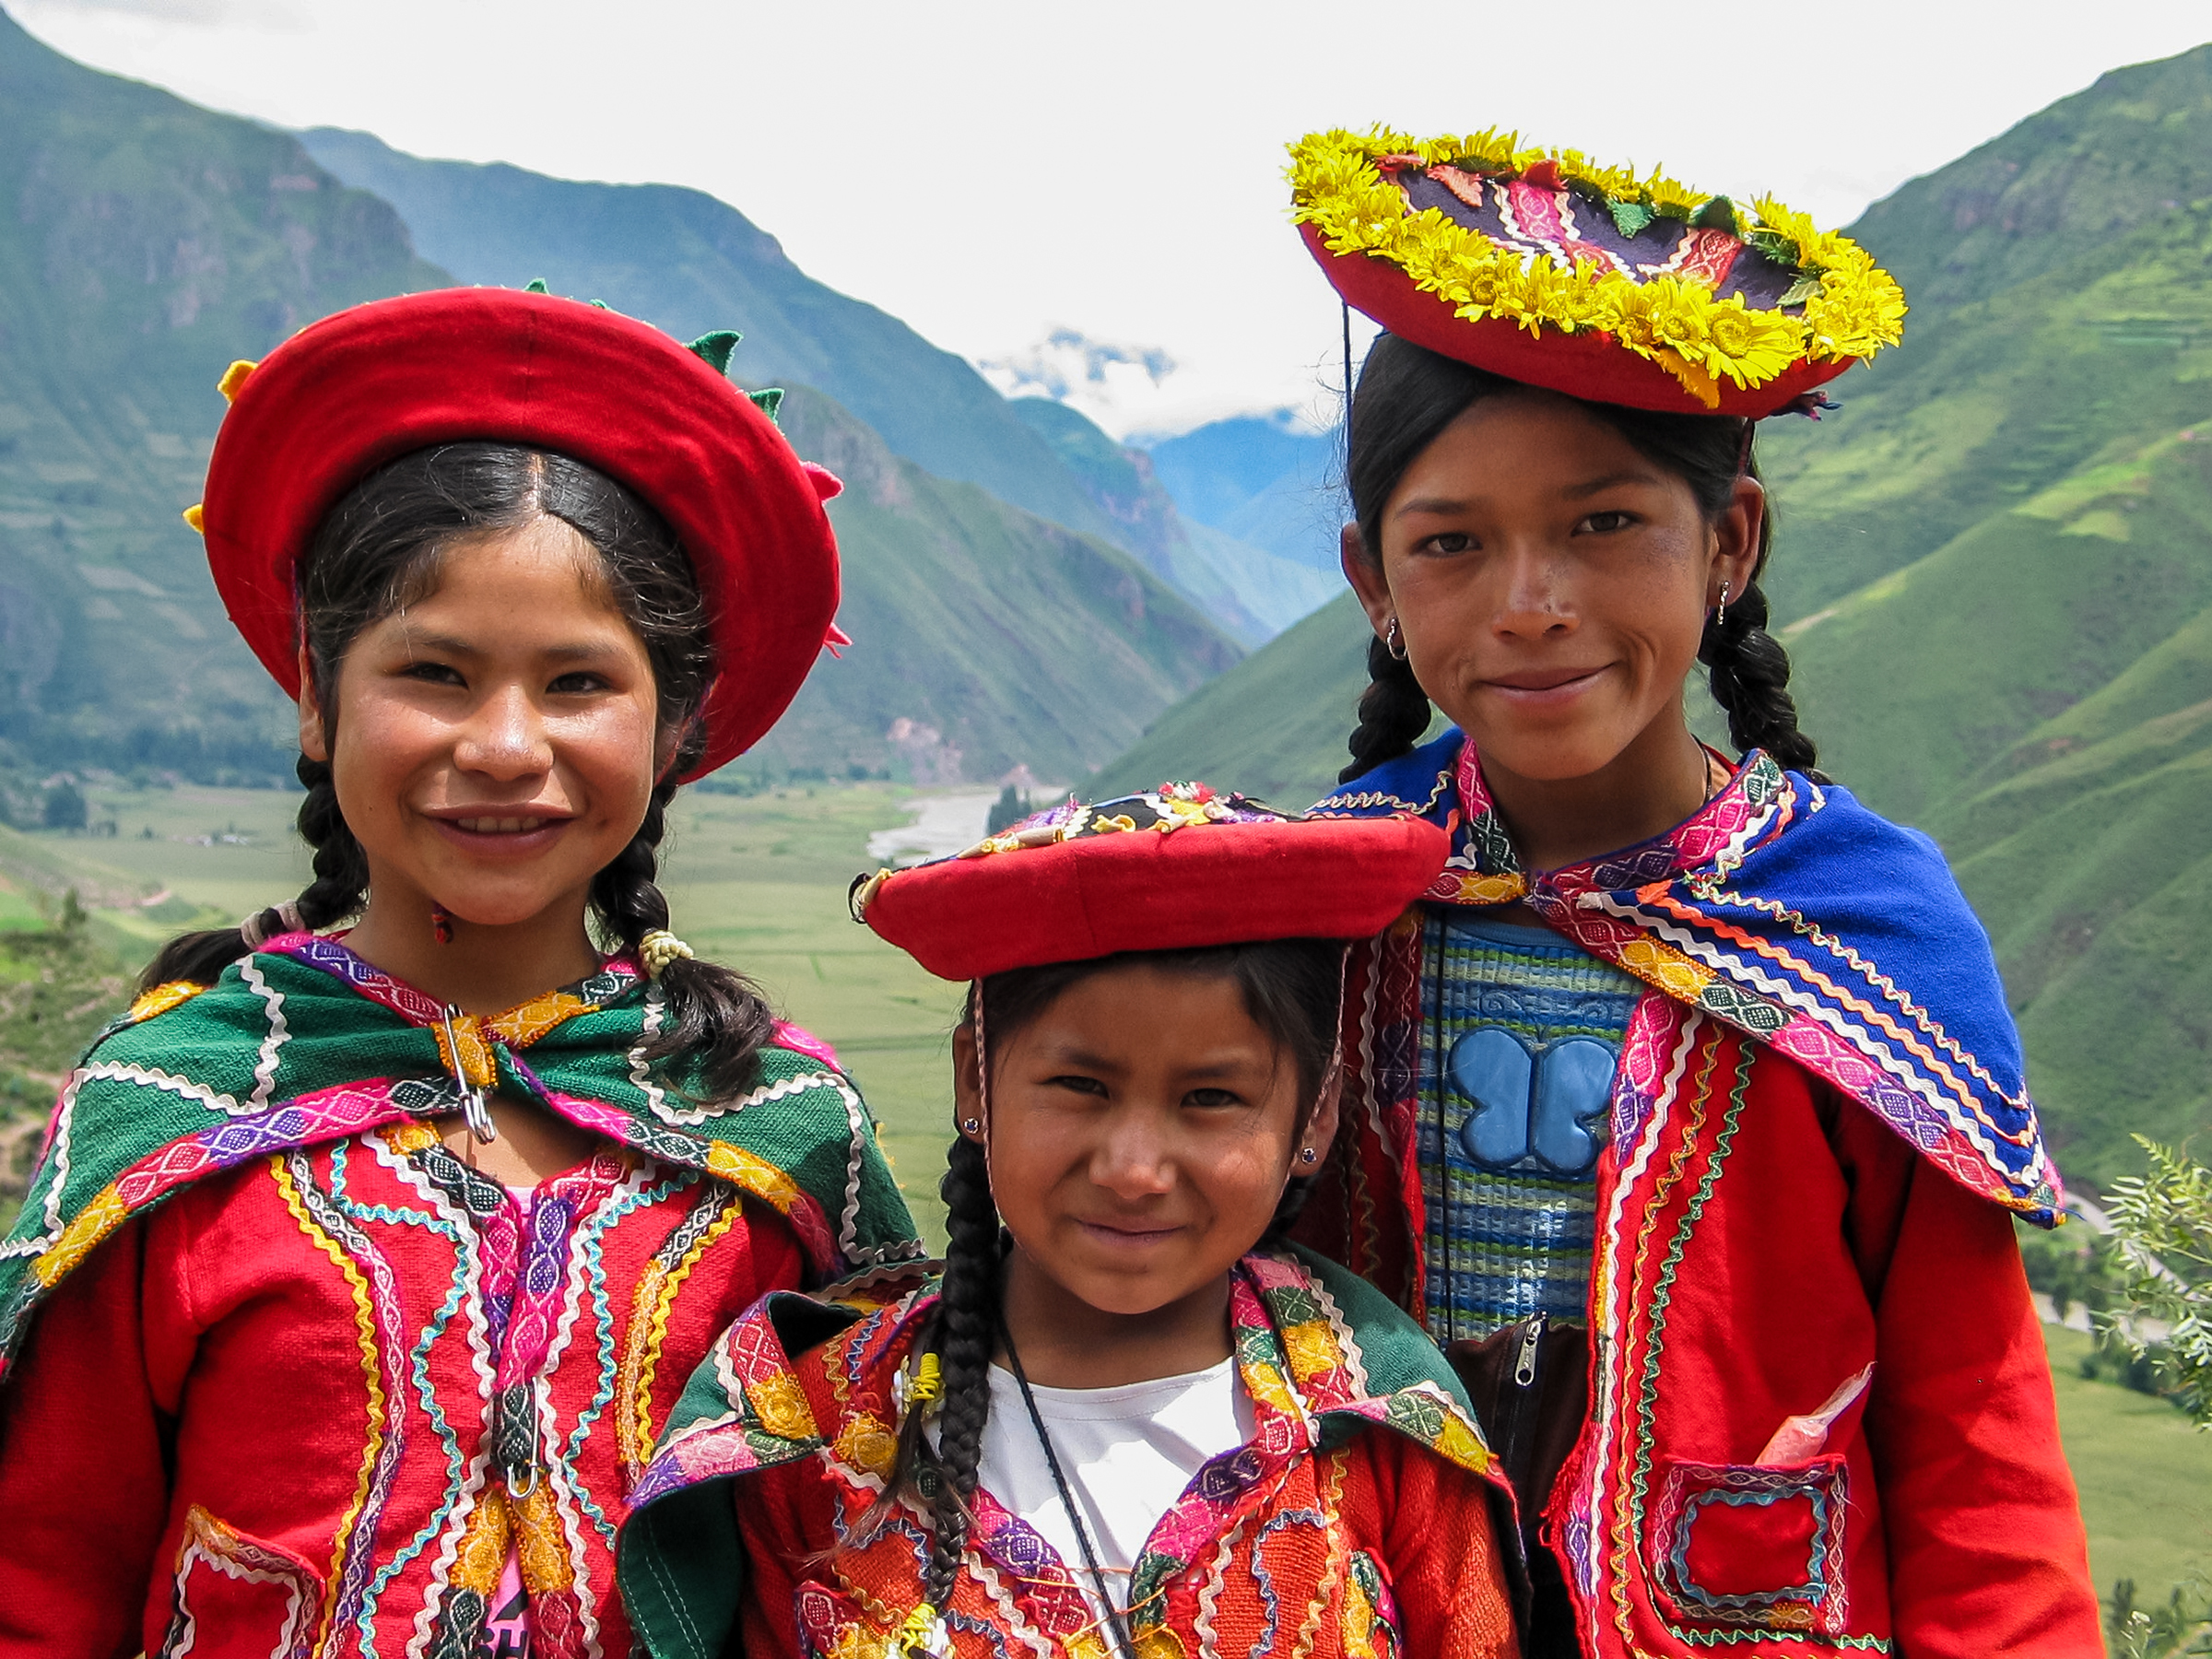 High Levels Of Arsenic In Drinking Water Fostered Genetic Tolerance In Andean People